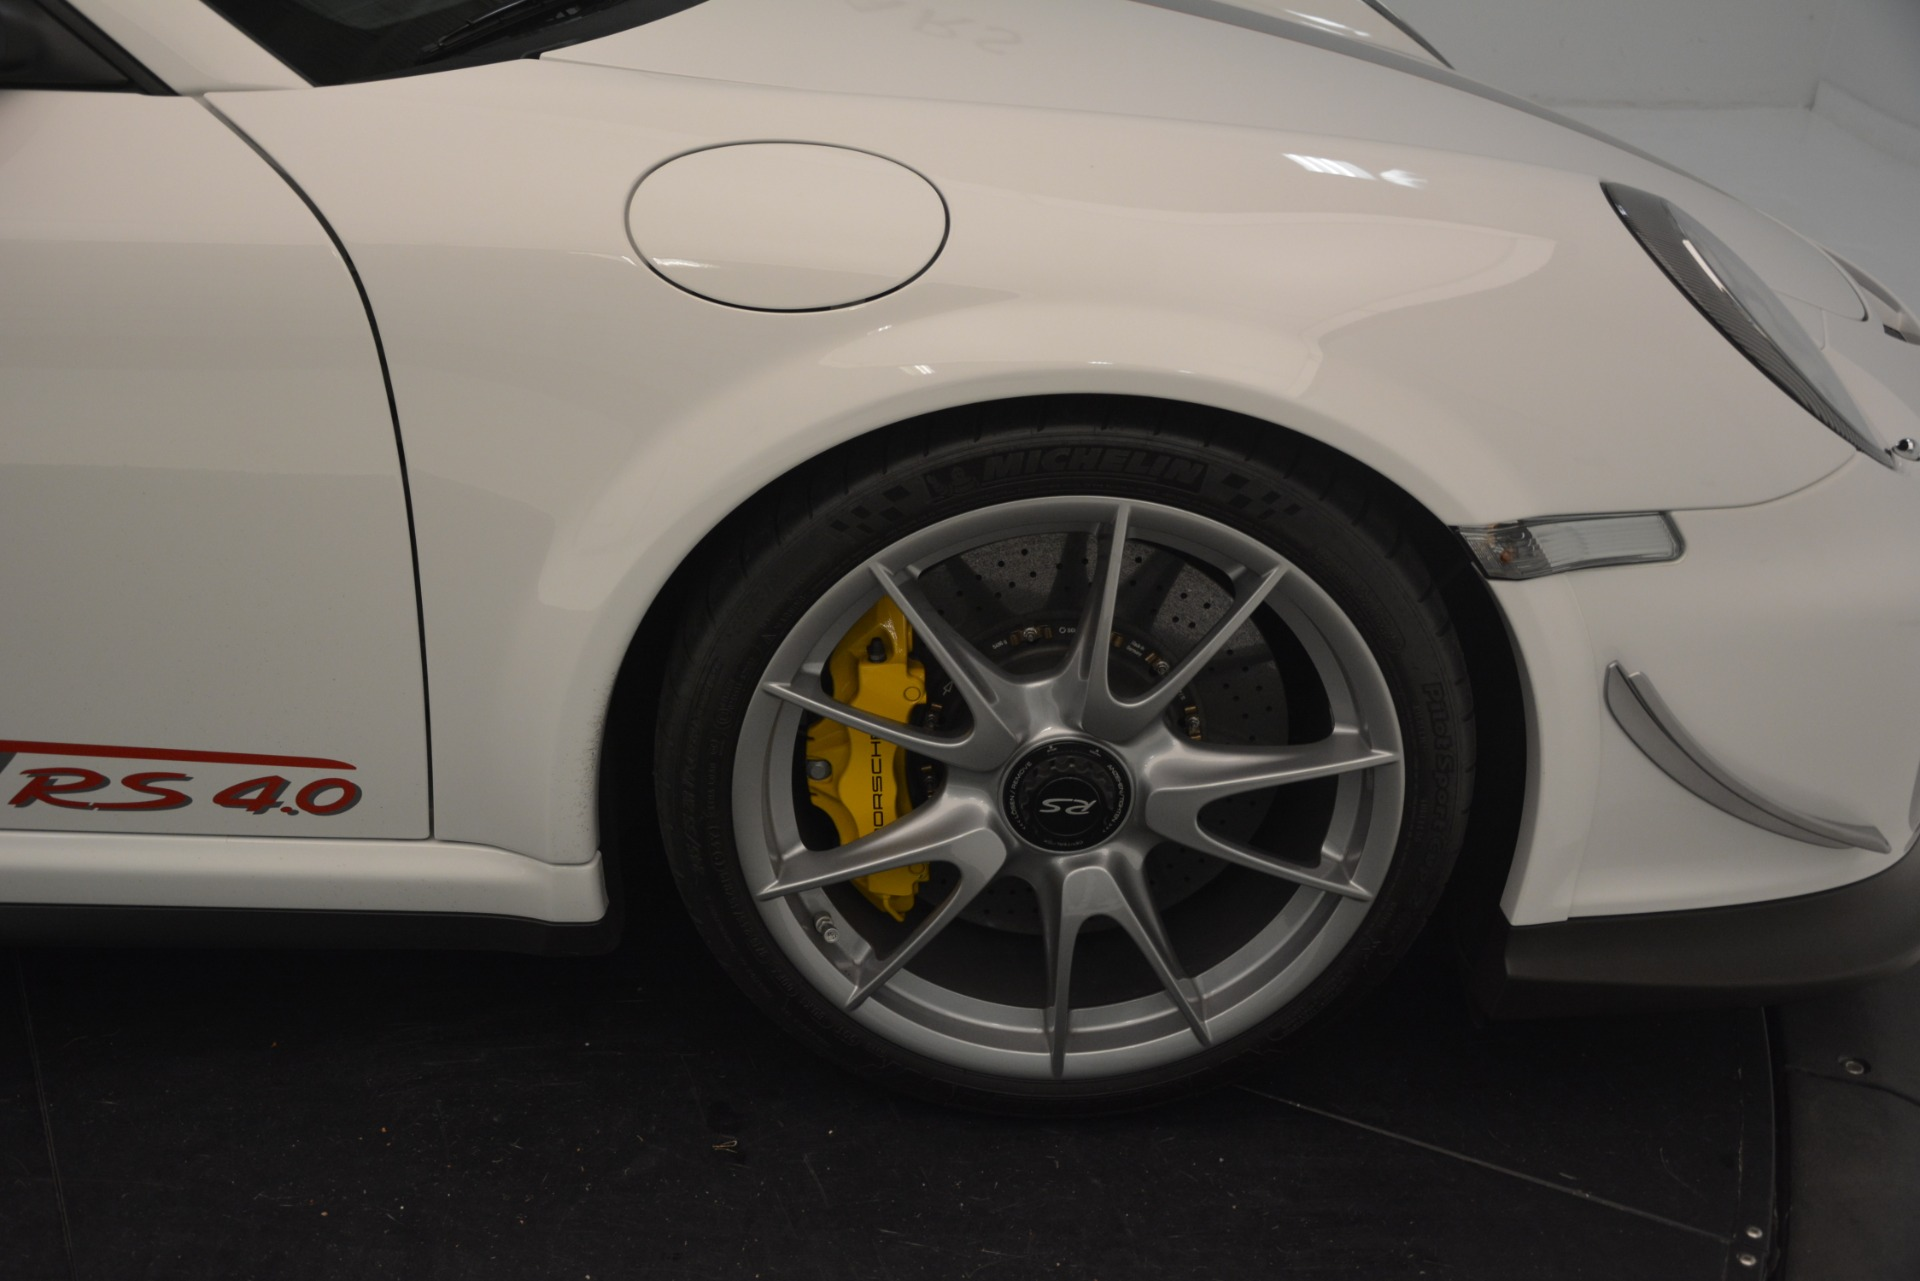 Used 2011 Porsche 911 GT3 RS 4.0 For Sale In Westport, CT 3188_p25